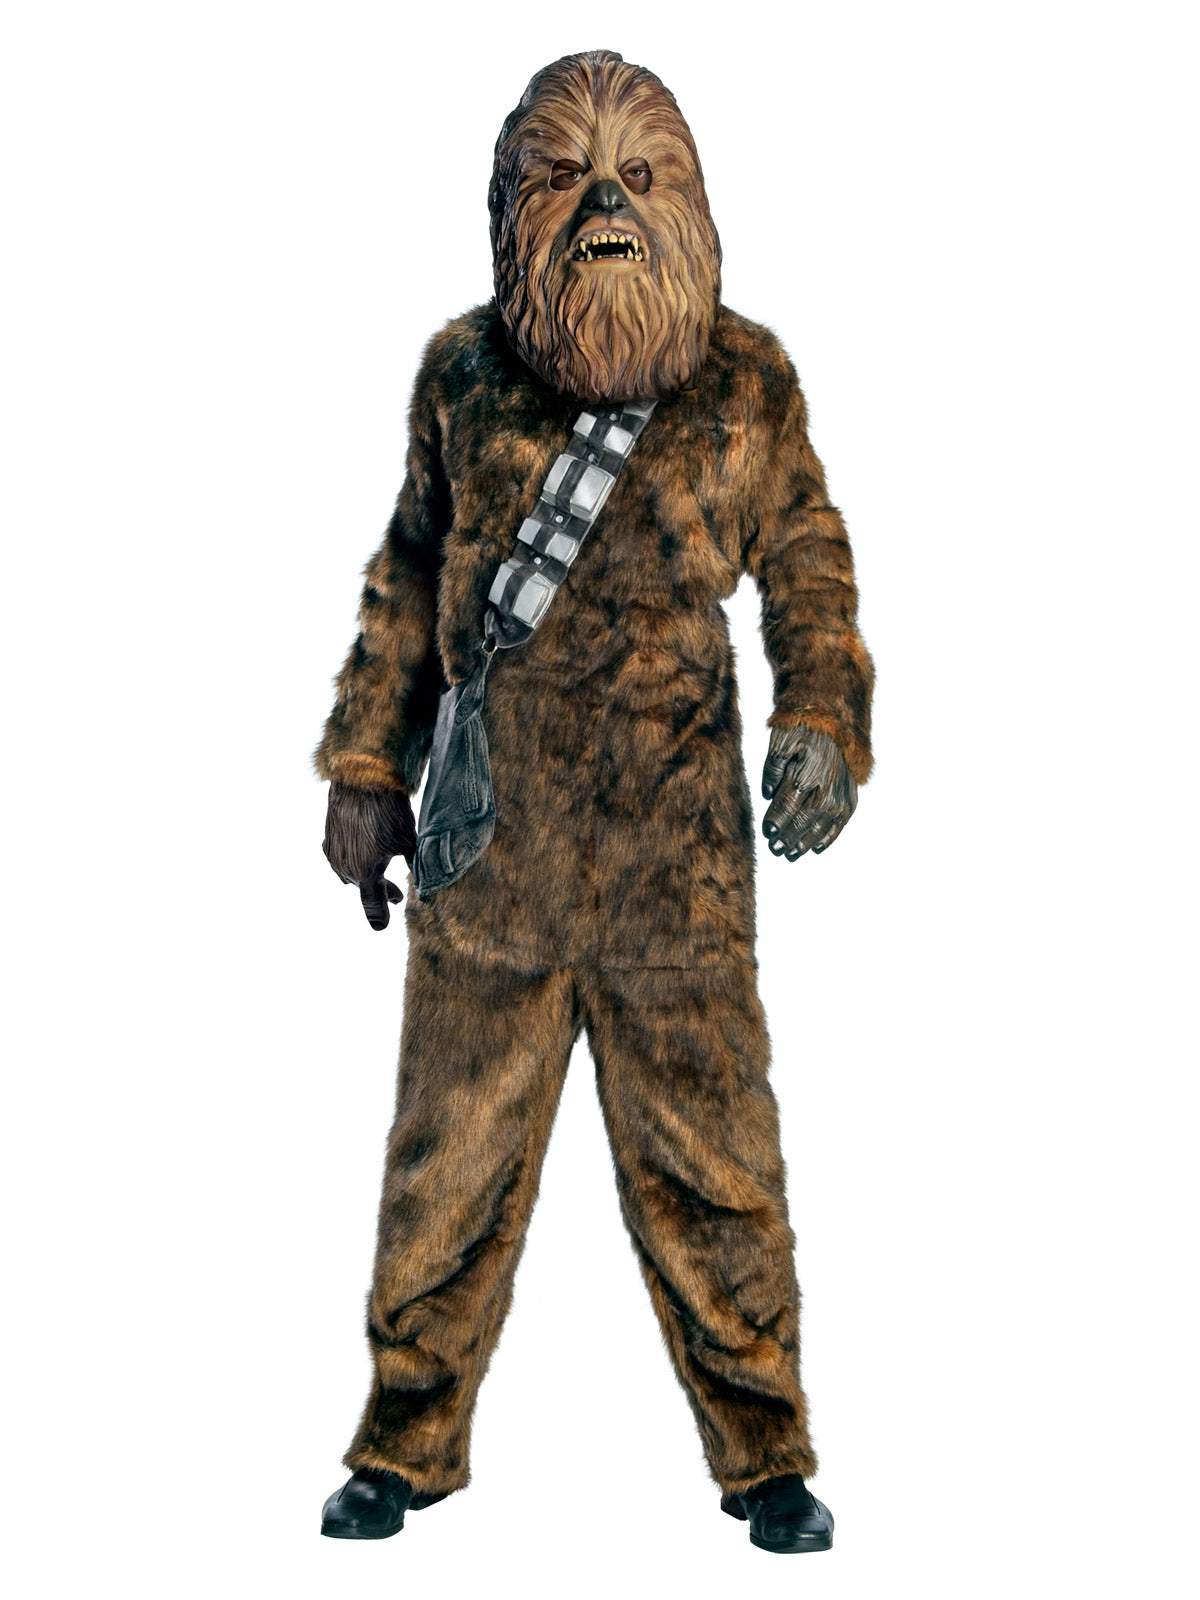 Chewbacca Premium Costume - Buy Online Only